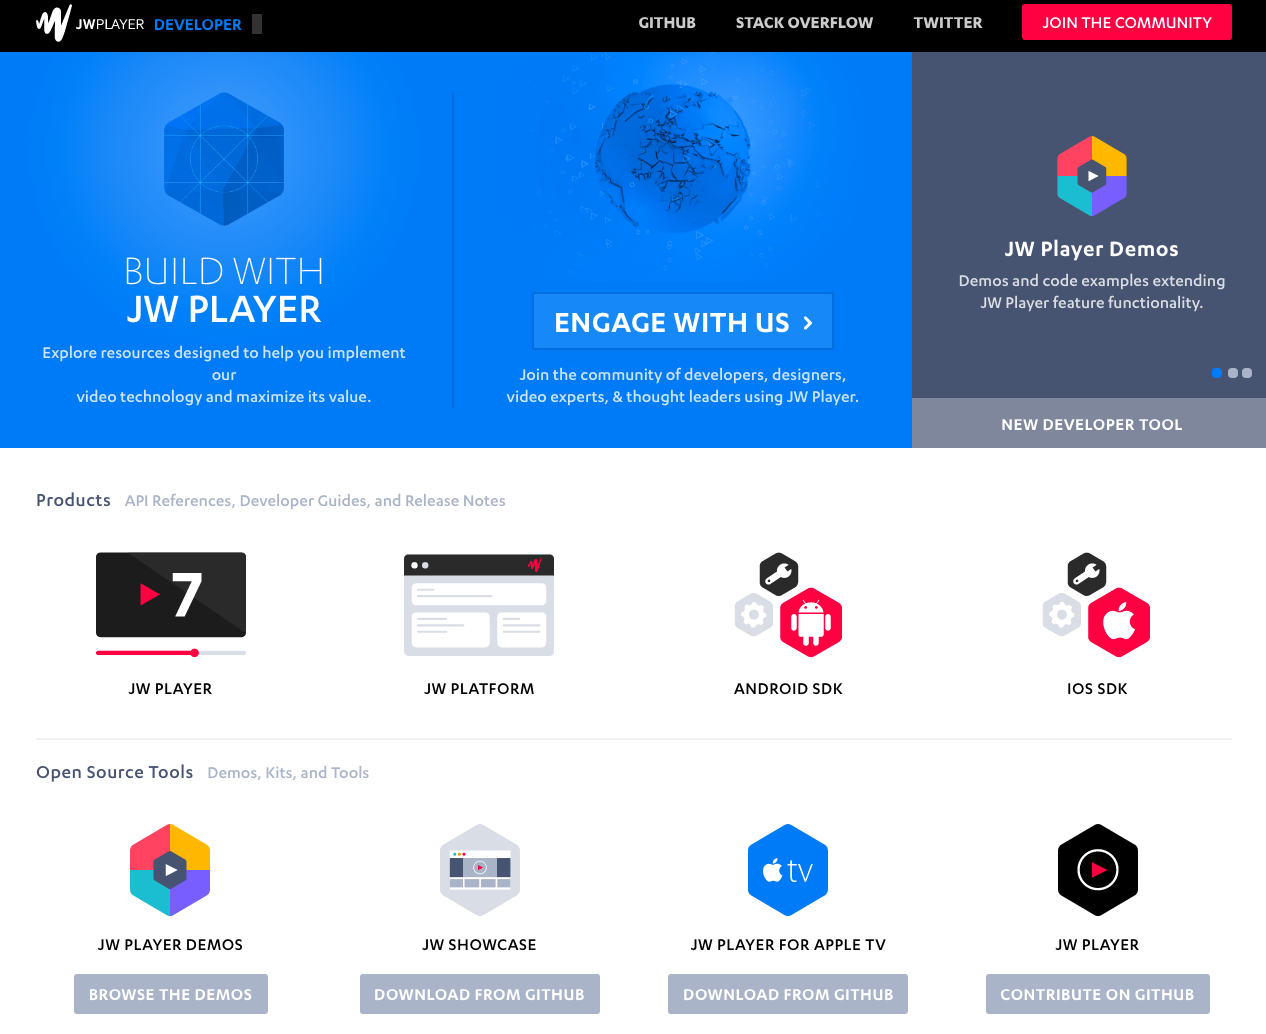 Announcing the JW Player Developer Portal | JW Player